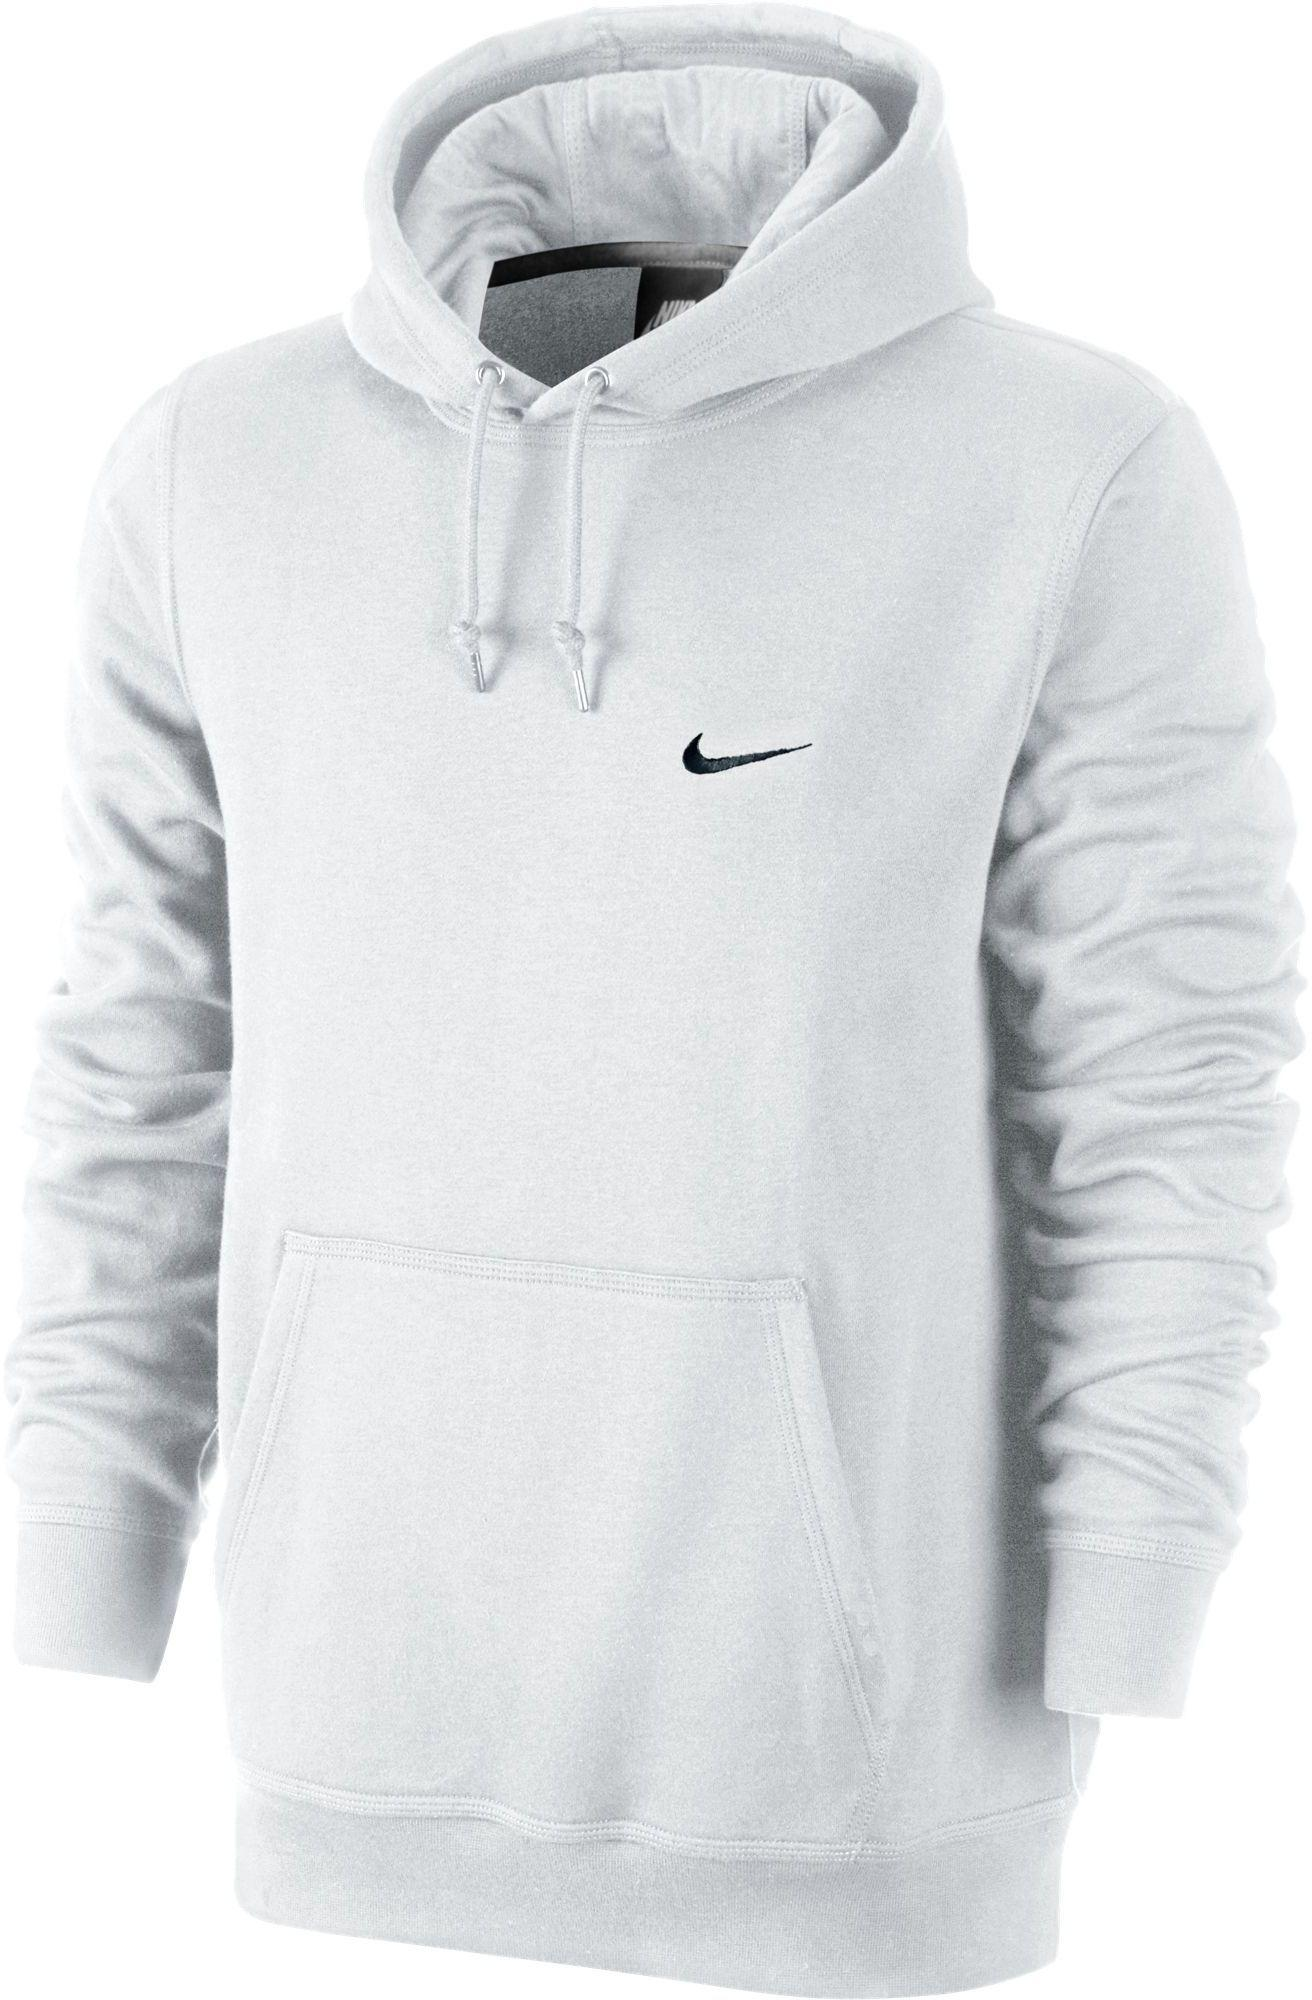 dc800ae5e Nike Classic Club Fleece Hoodie in White for Men - Lyst